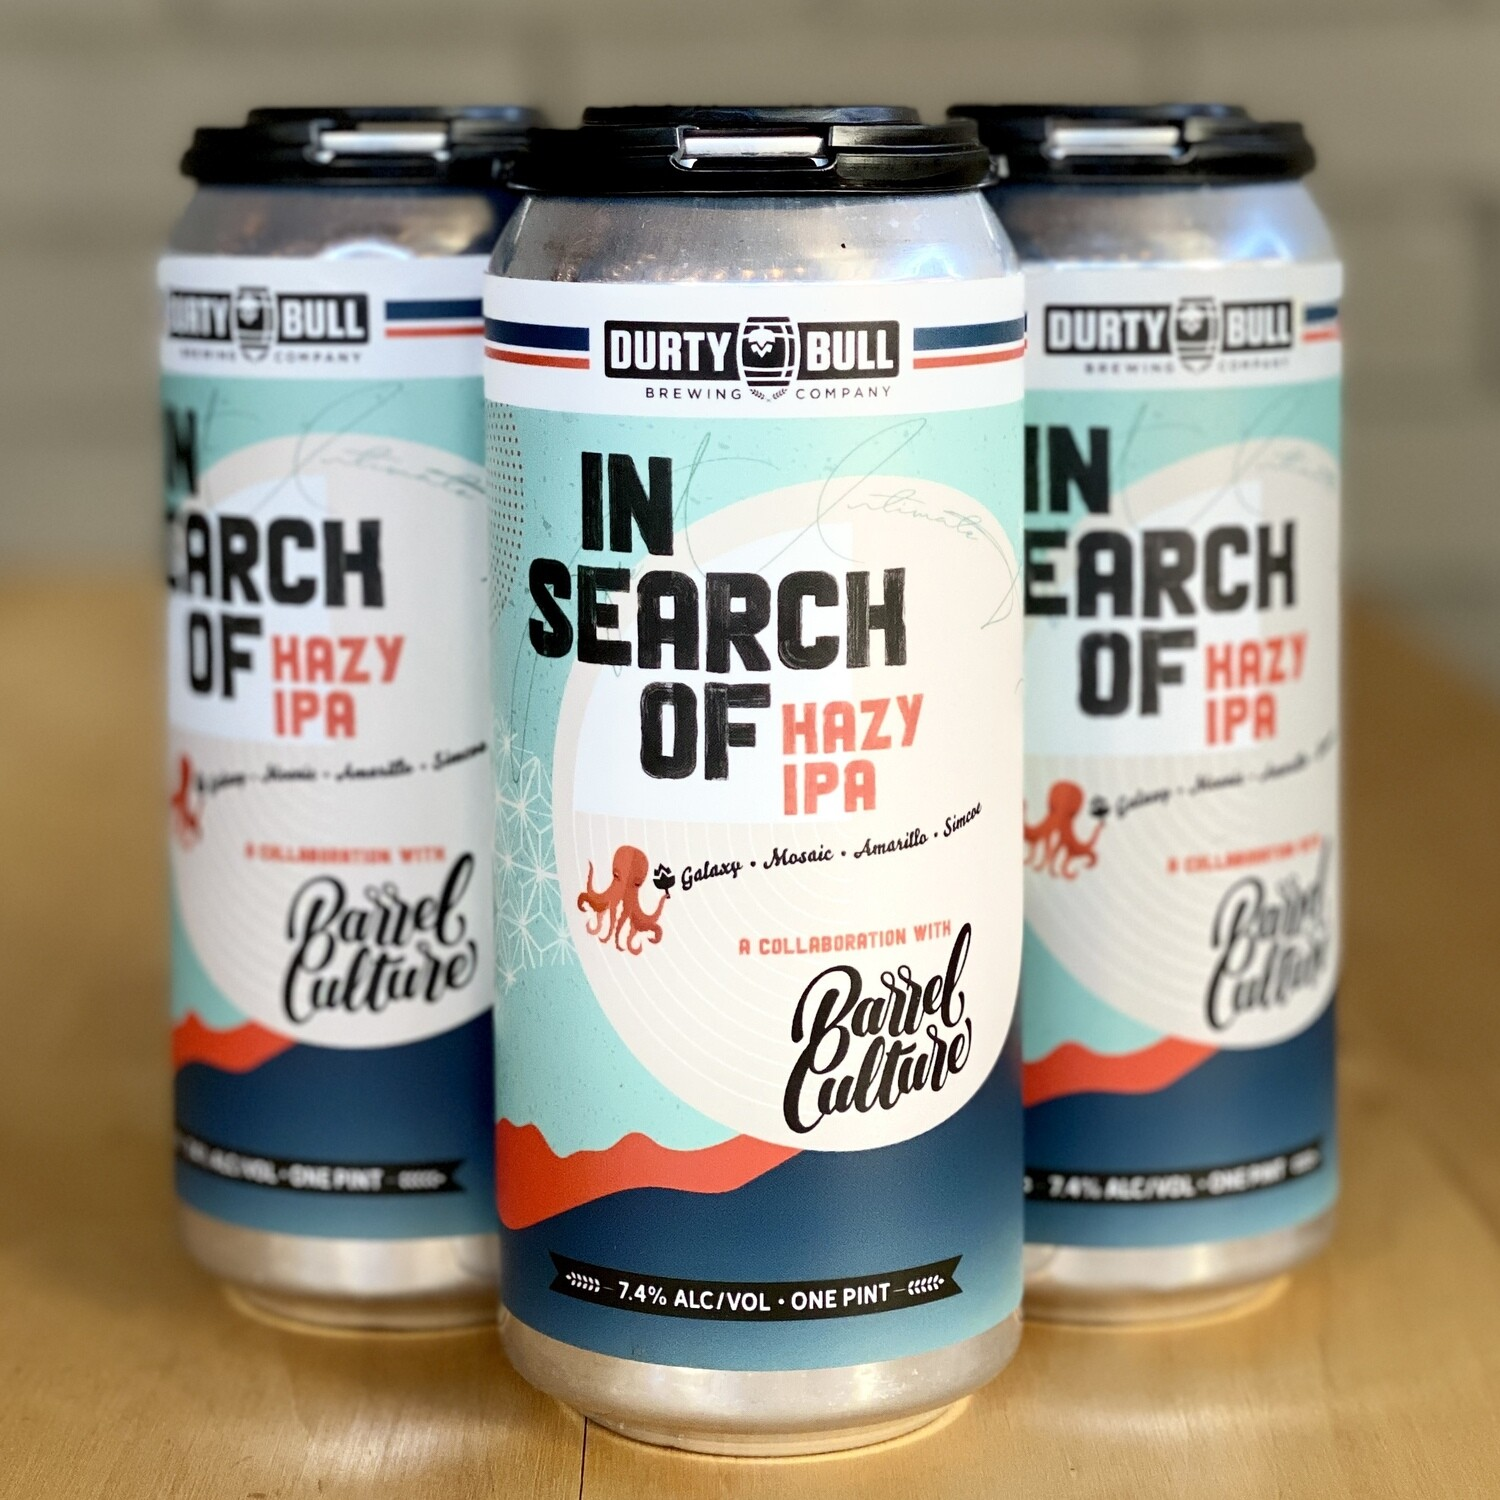 Durty Bull In Search Of Hazy IPA (4pk)